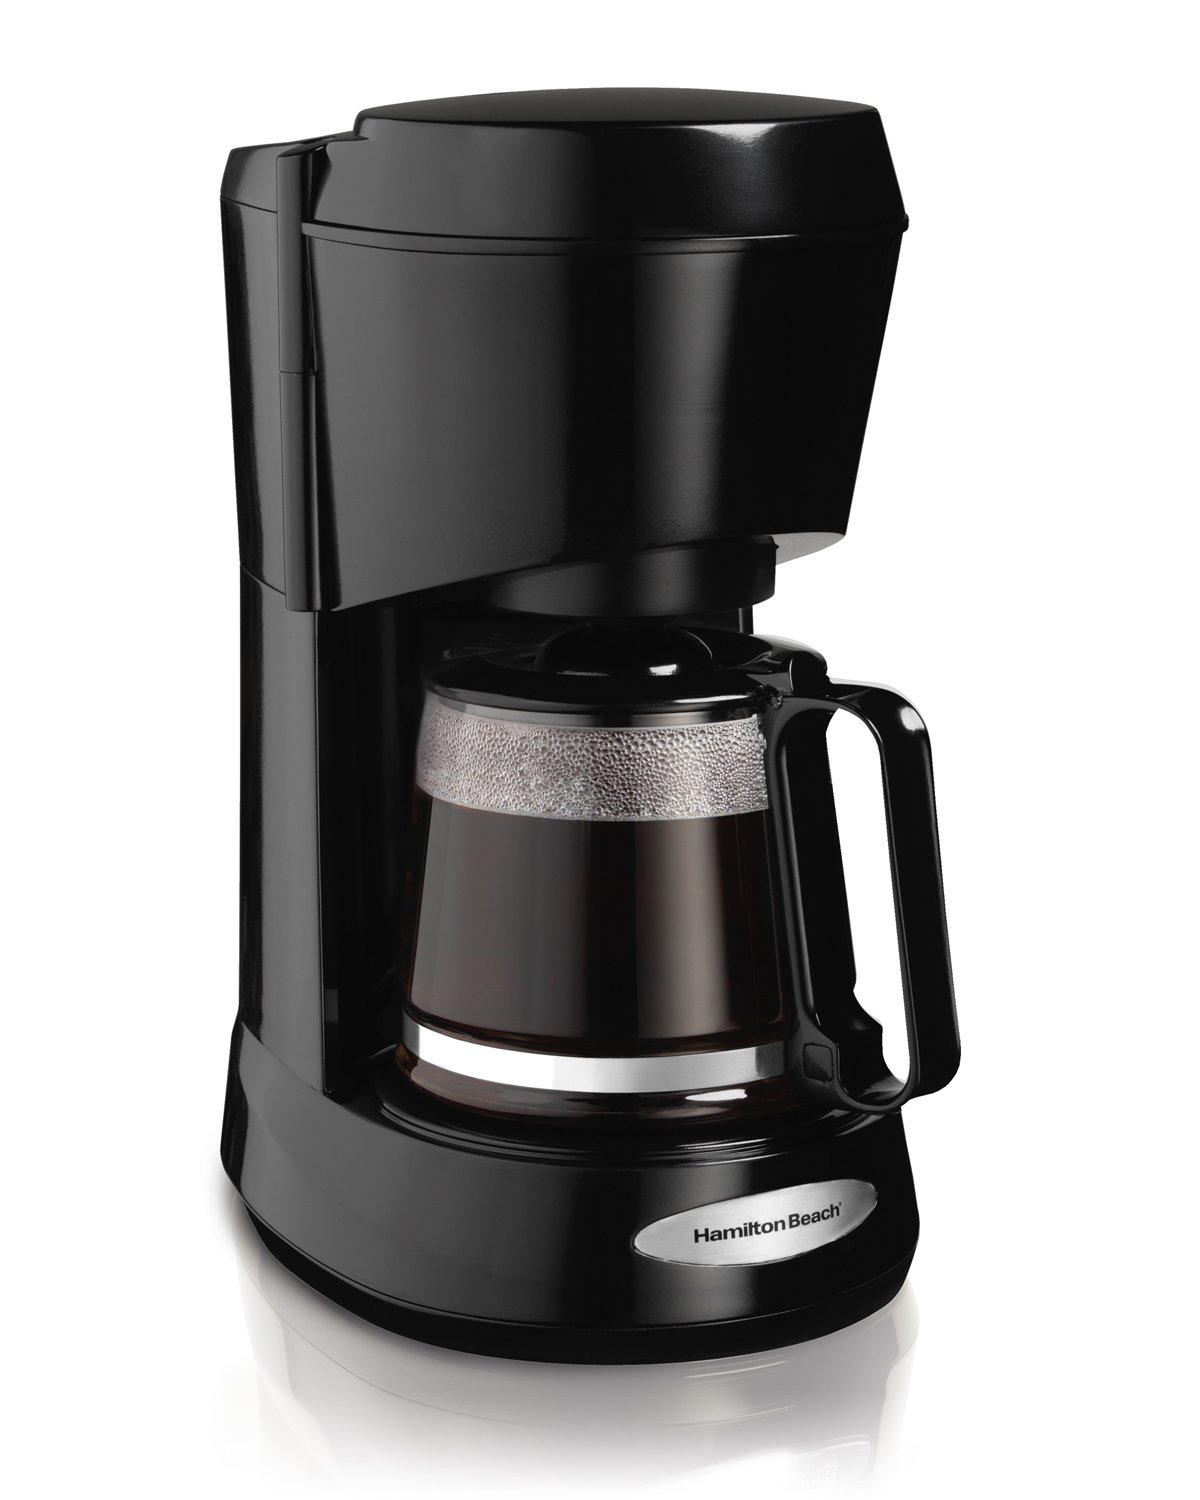 Hamilton Beach Coffee Maker ON...